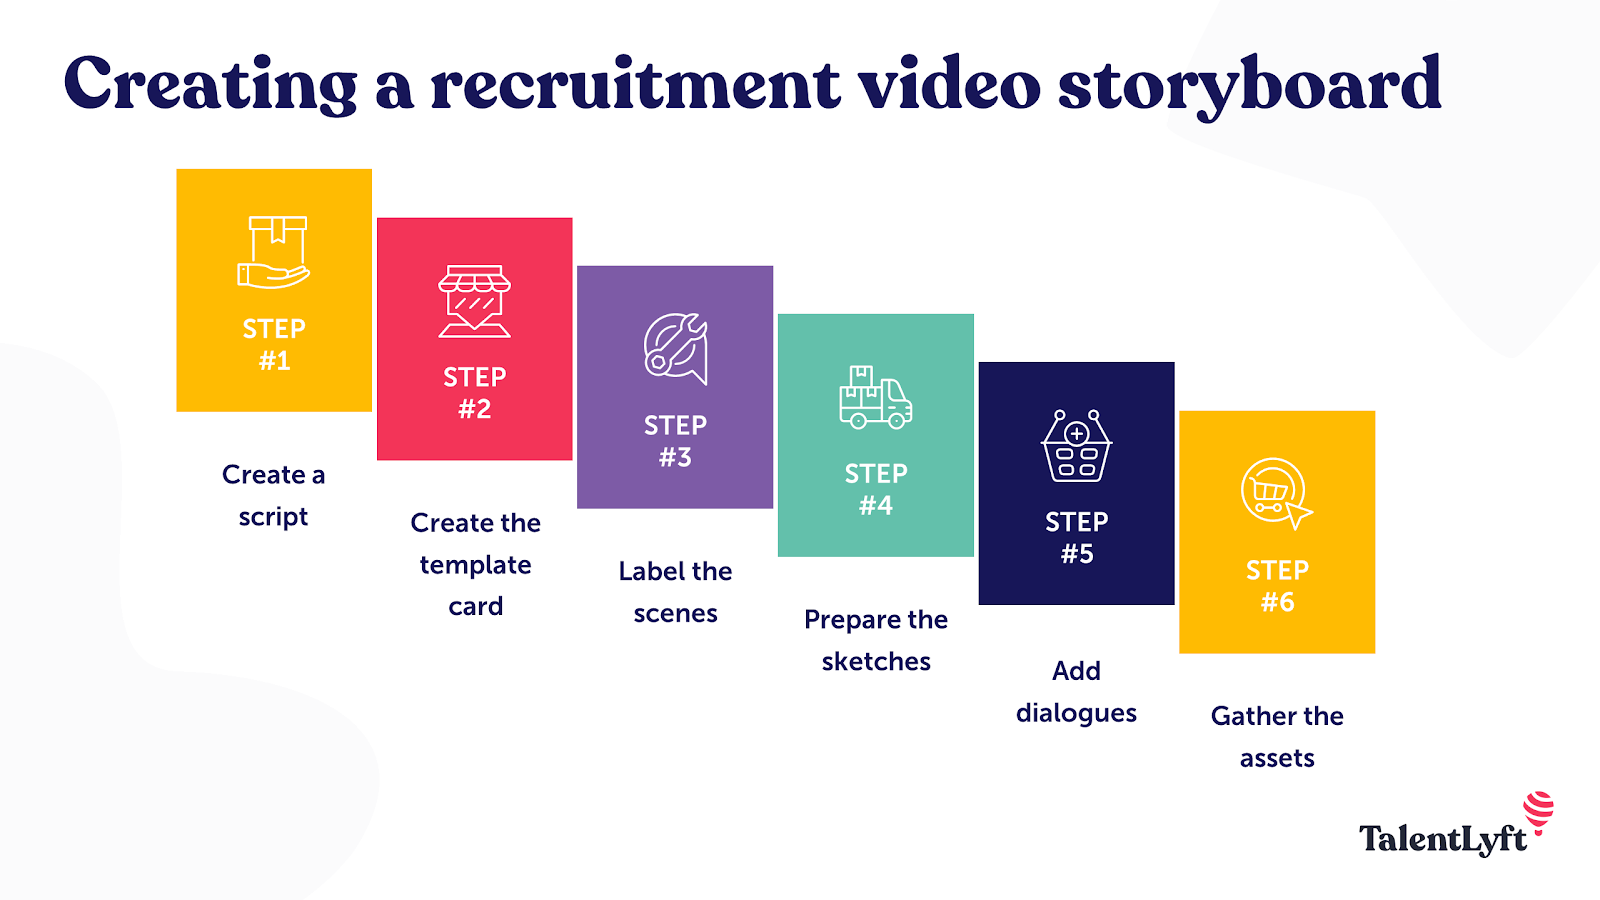 How to create a recruitment video storyboard